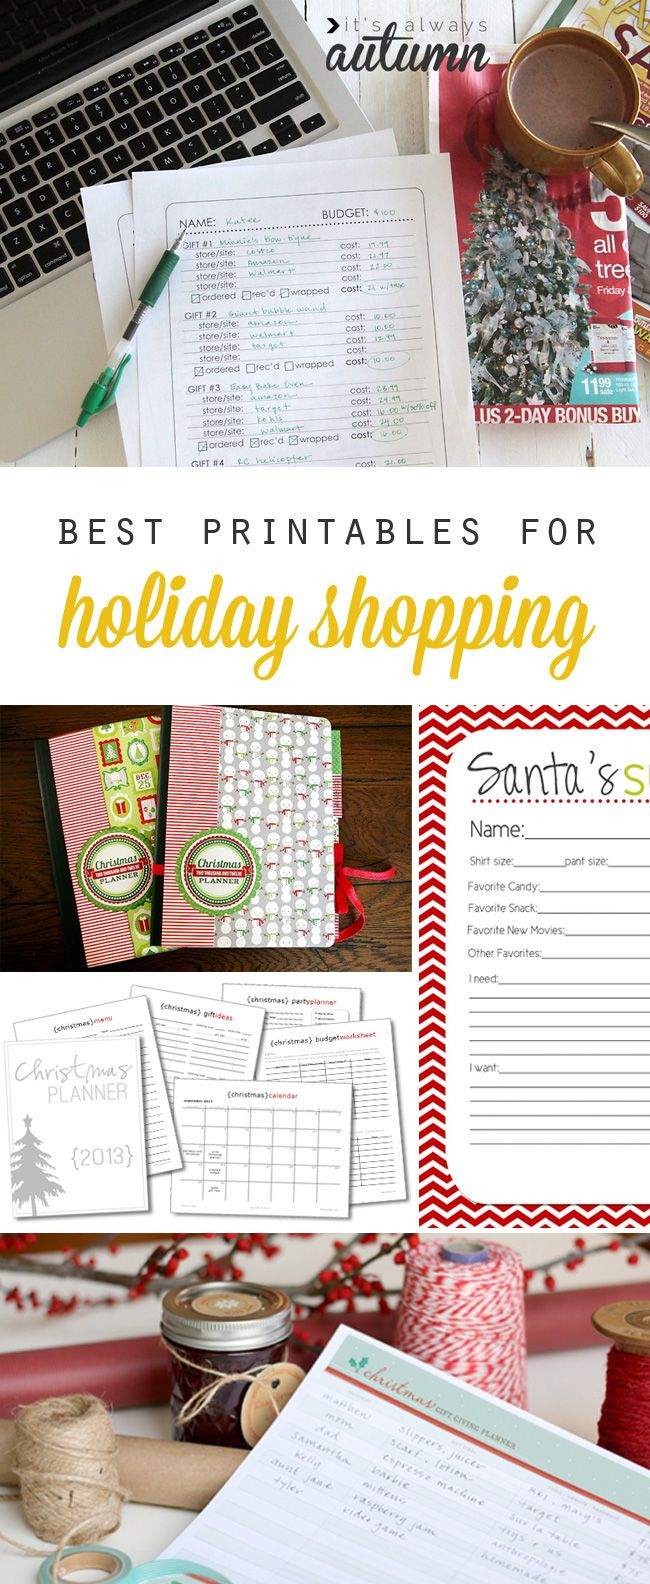 get organized and stay on budget this Christmas with these free holiday shopping printables